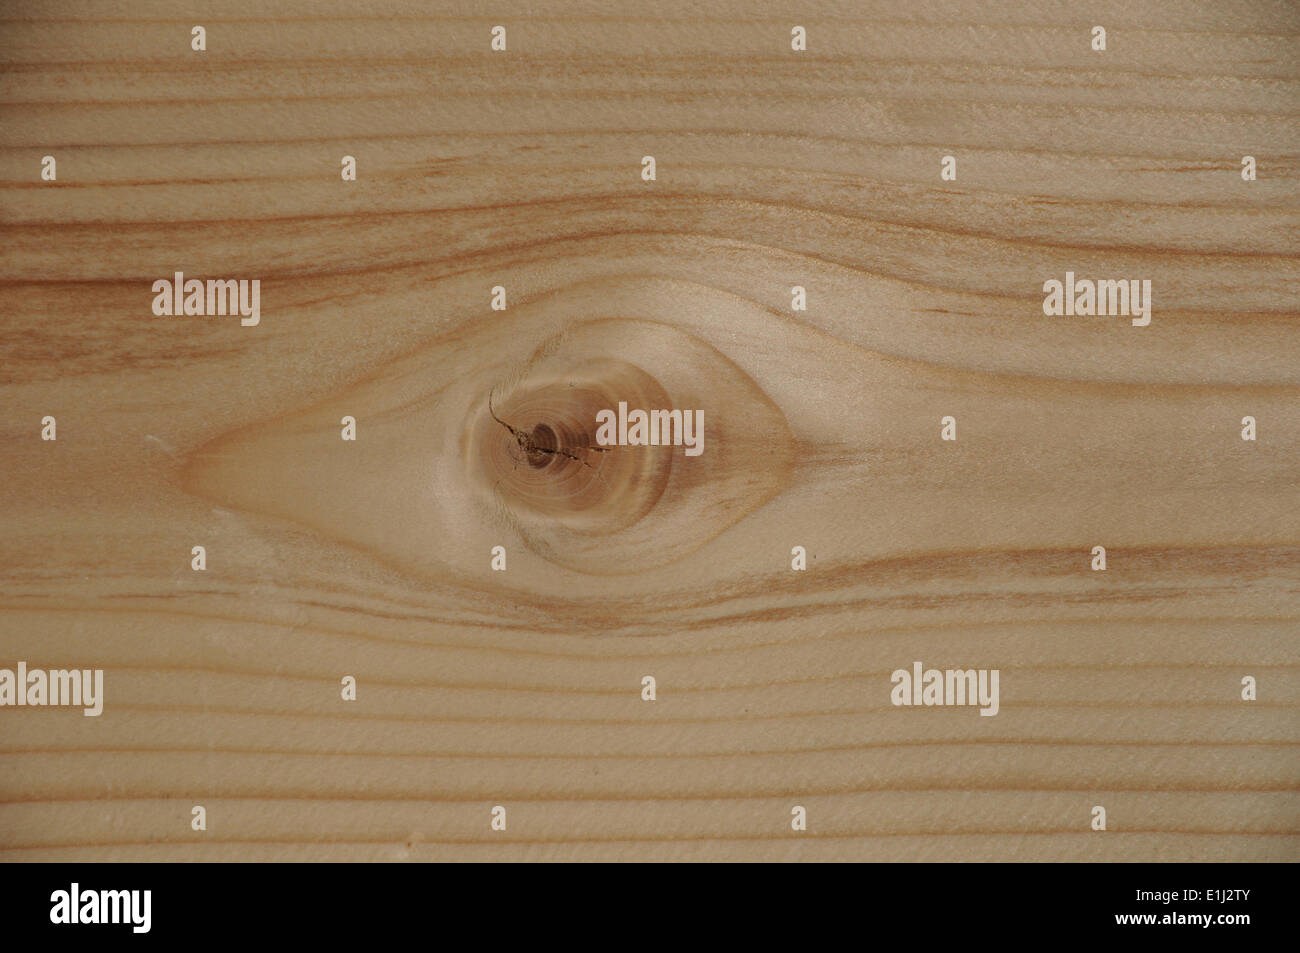 Board - Stock Image